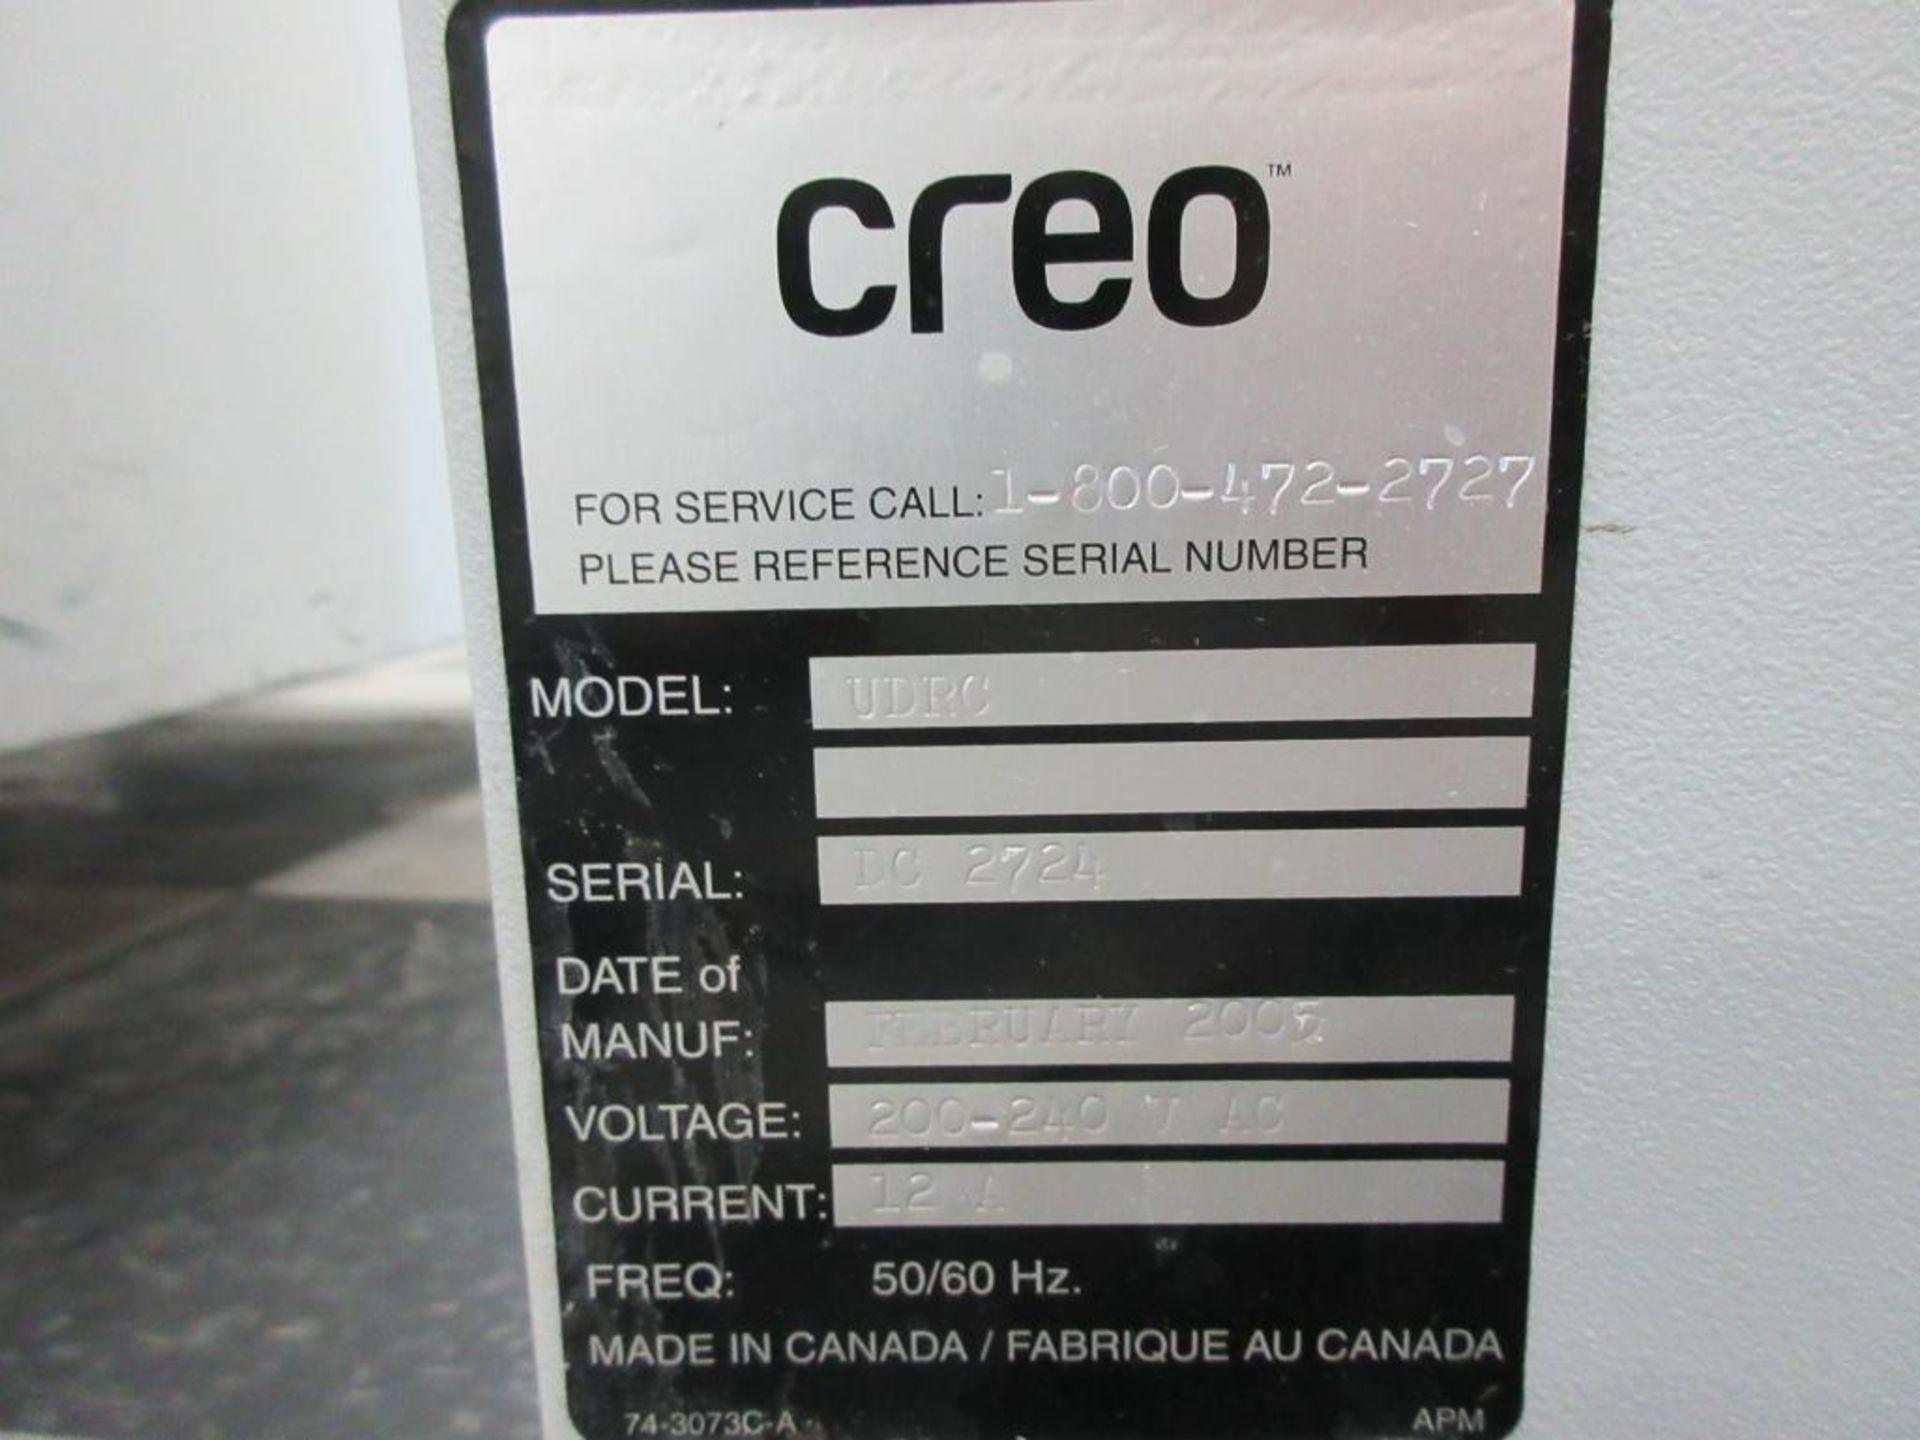 2005 Creo particulate filter model UDRC, configuration BP, replacement filter 57-8792, sn DC2724 - Image 3 of 4